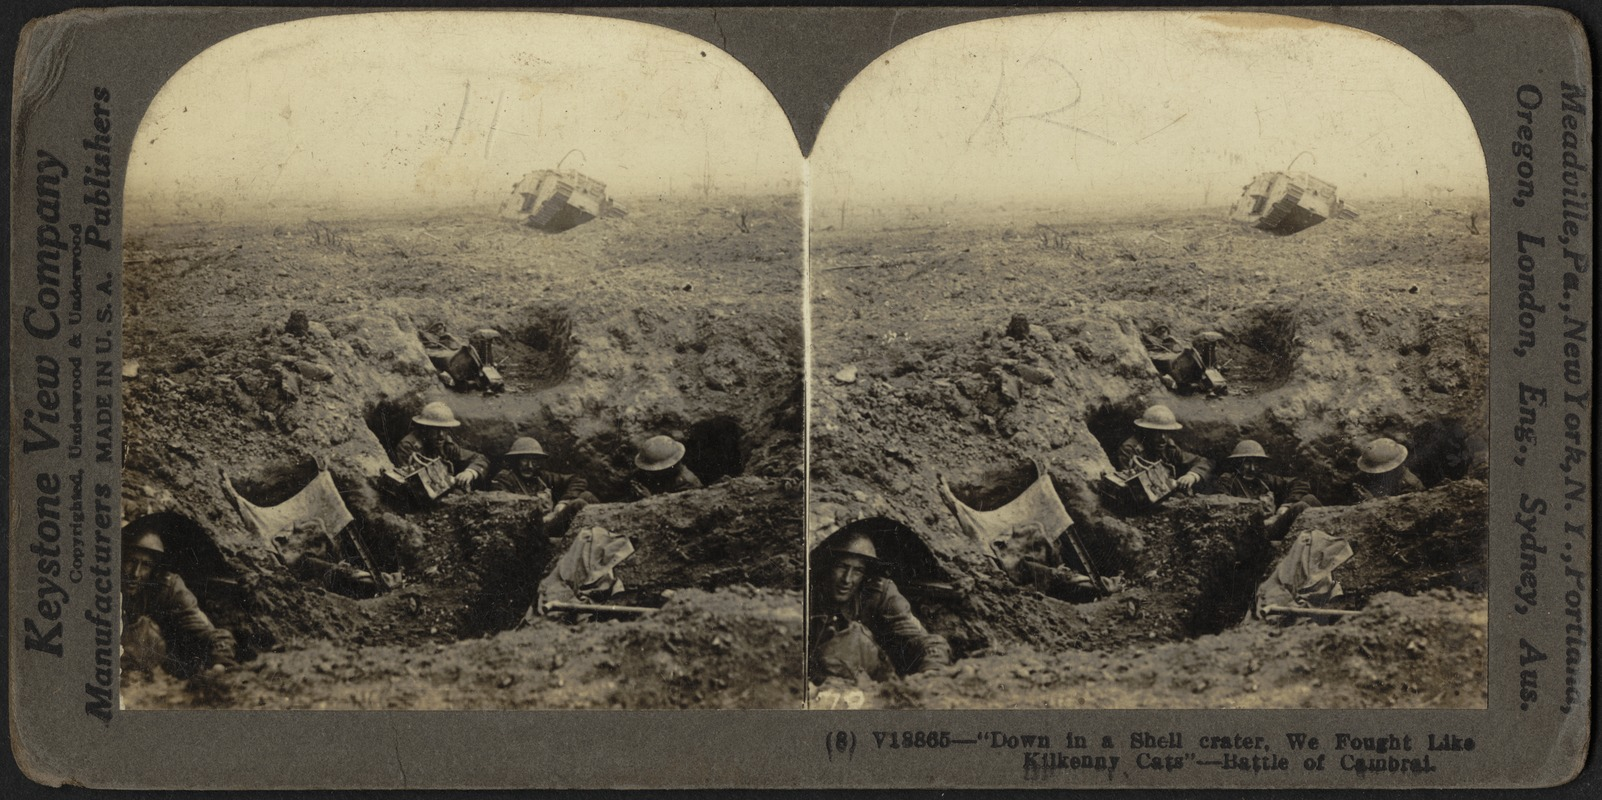 """""""Down in a shell crater we fought"""" - Battle of Cambrai"""